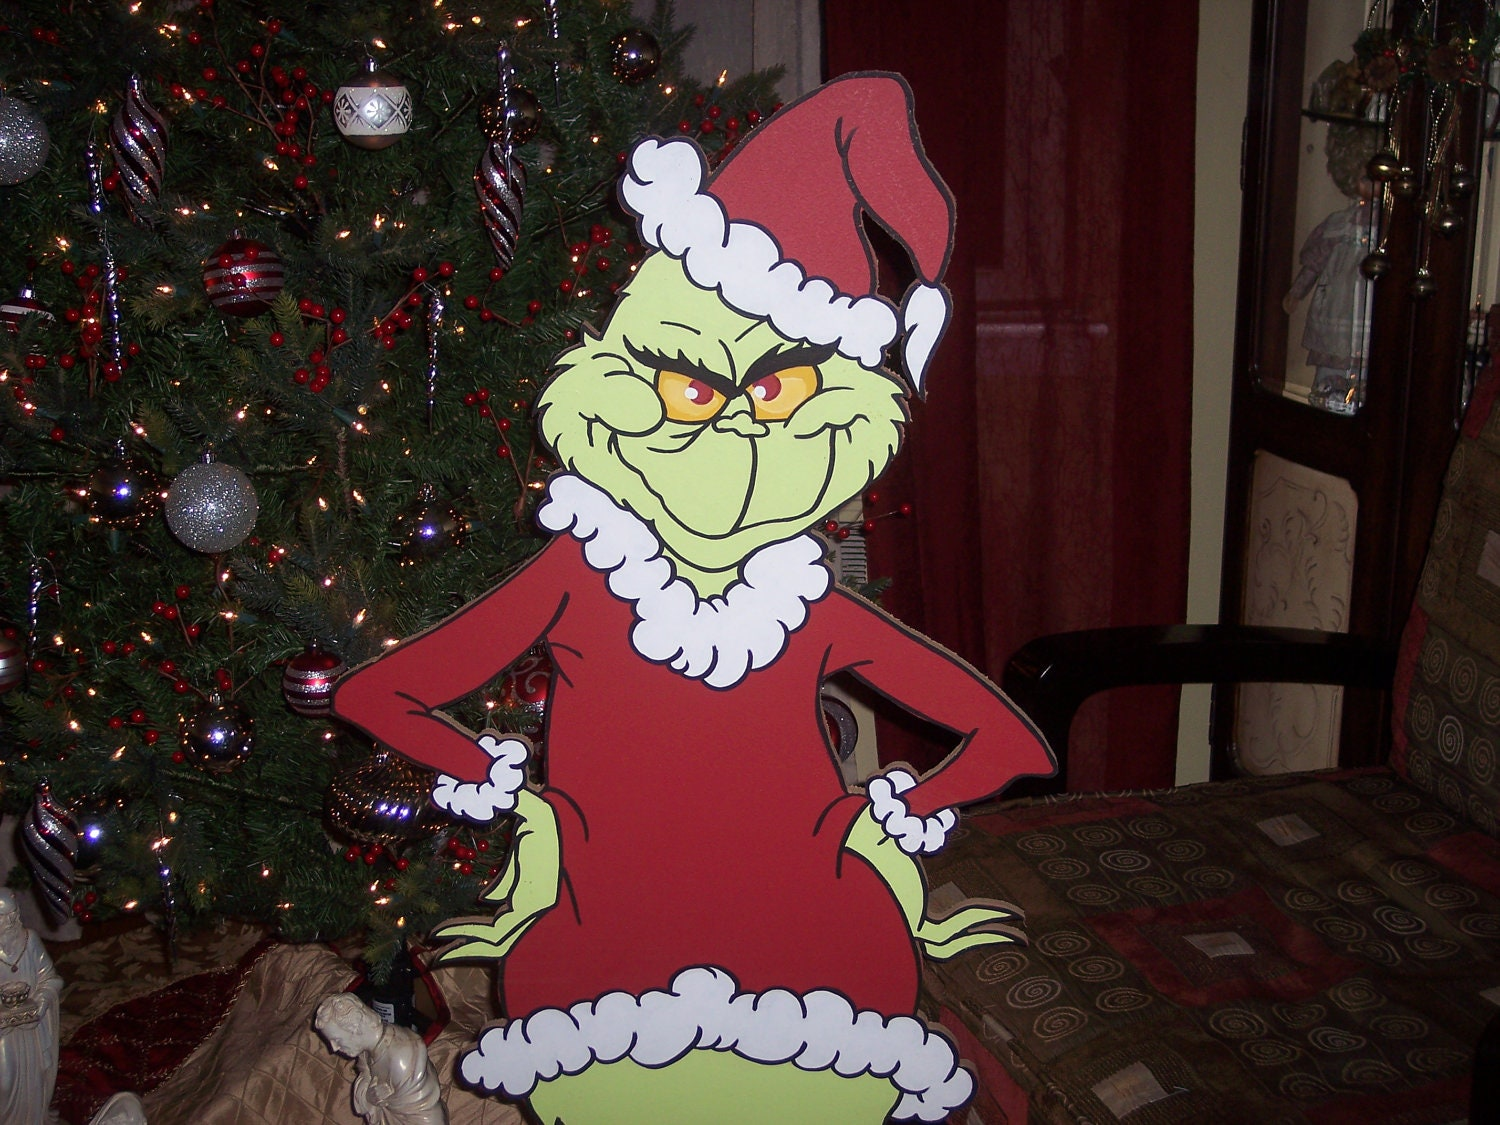 Resume Templates Grinch Cut Out 48 Grinch Christmas Yard Art Decoration By Woodartandsuch On Etsy